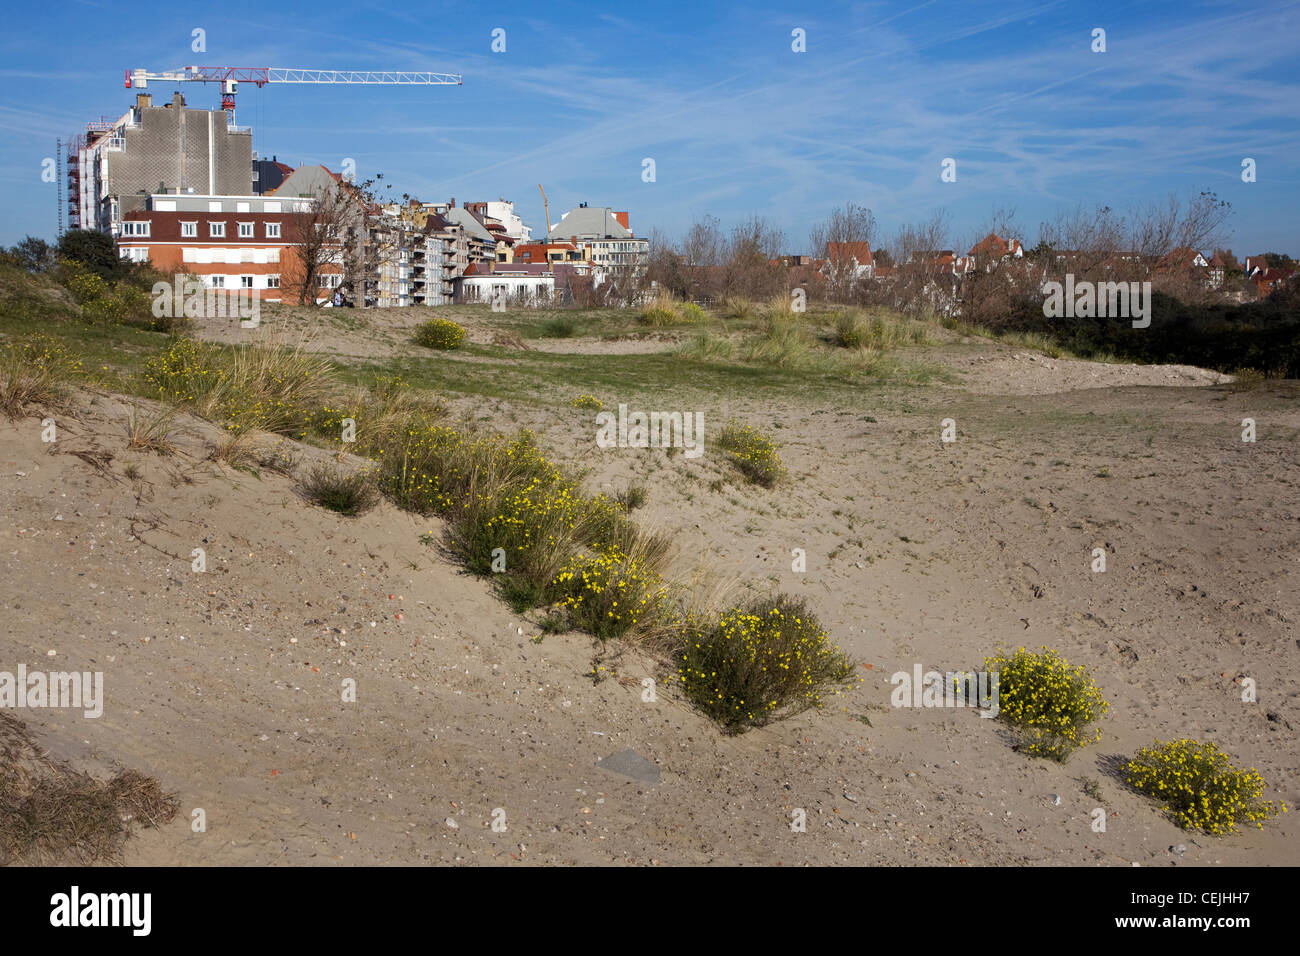 Dunes and advancing urbanization by building apartments along the Belgian North Sea coast, Knokke, Belgium - Stock Image